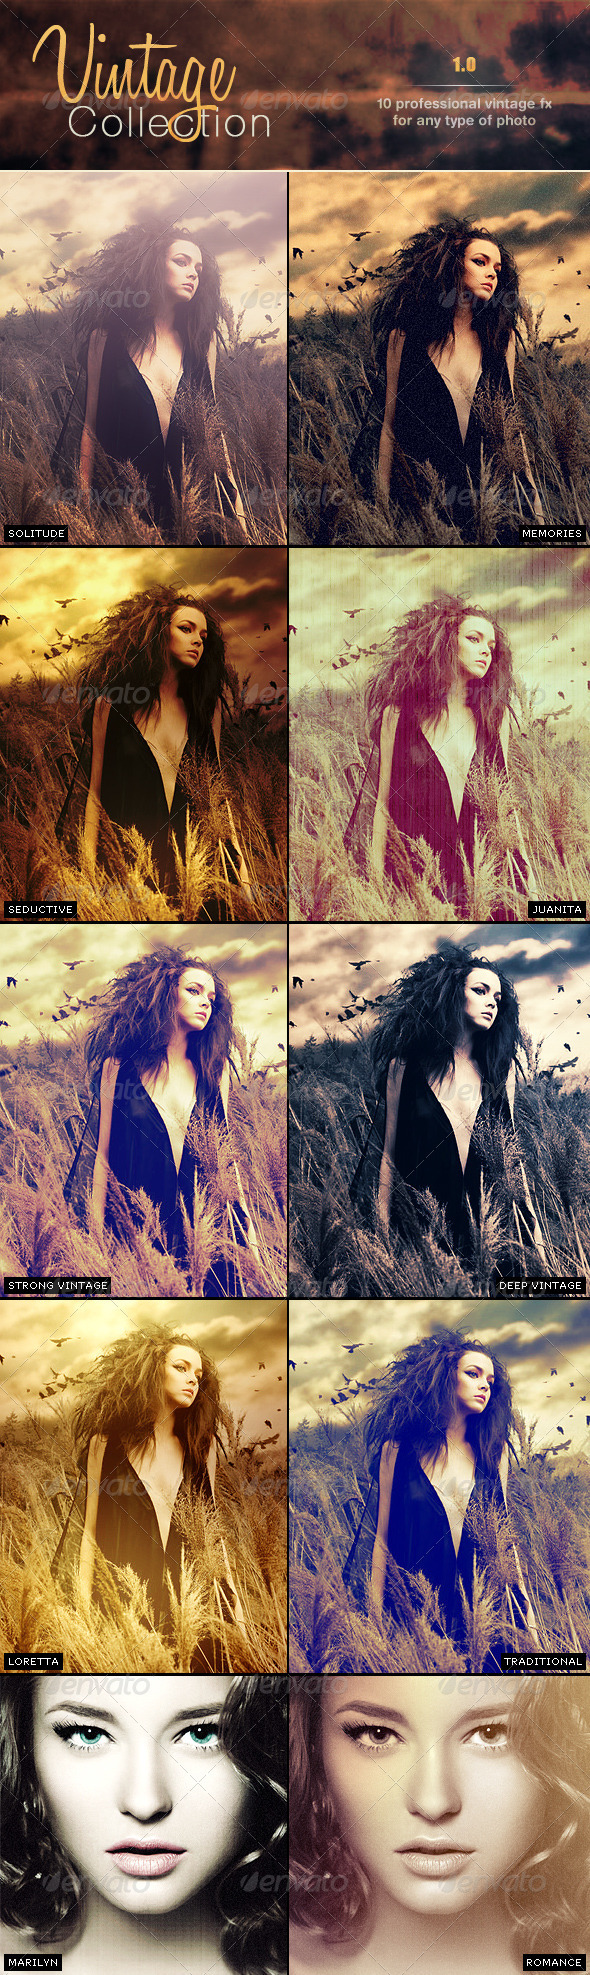 Vintage Pro Collection Photo Effects | Vol 1.0 - Photo Effects Actions